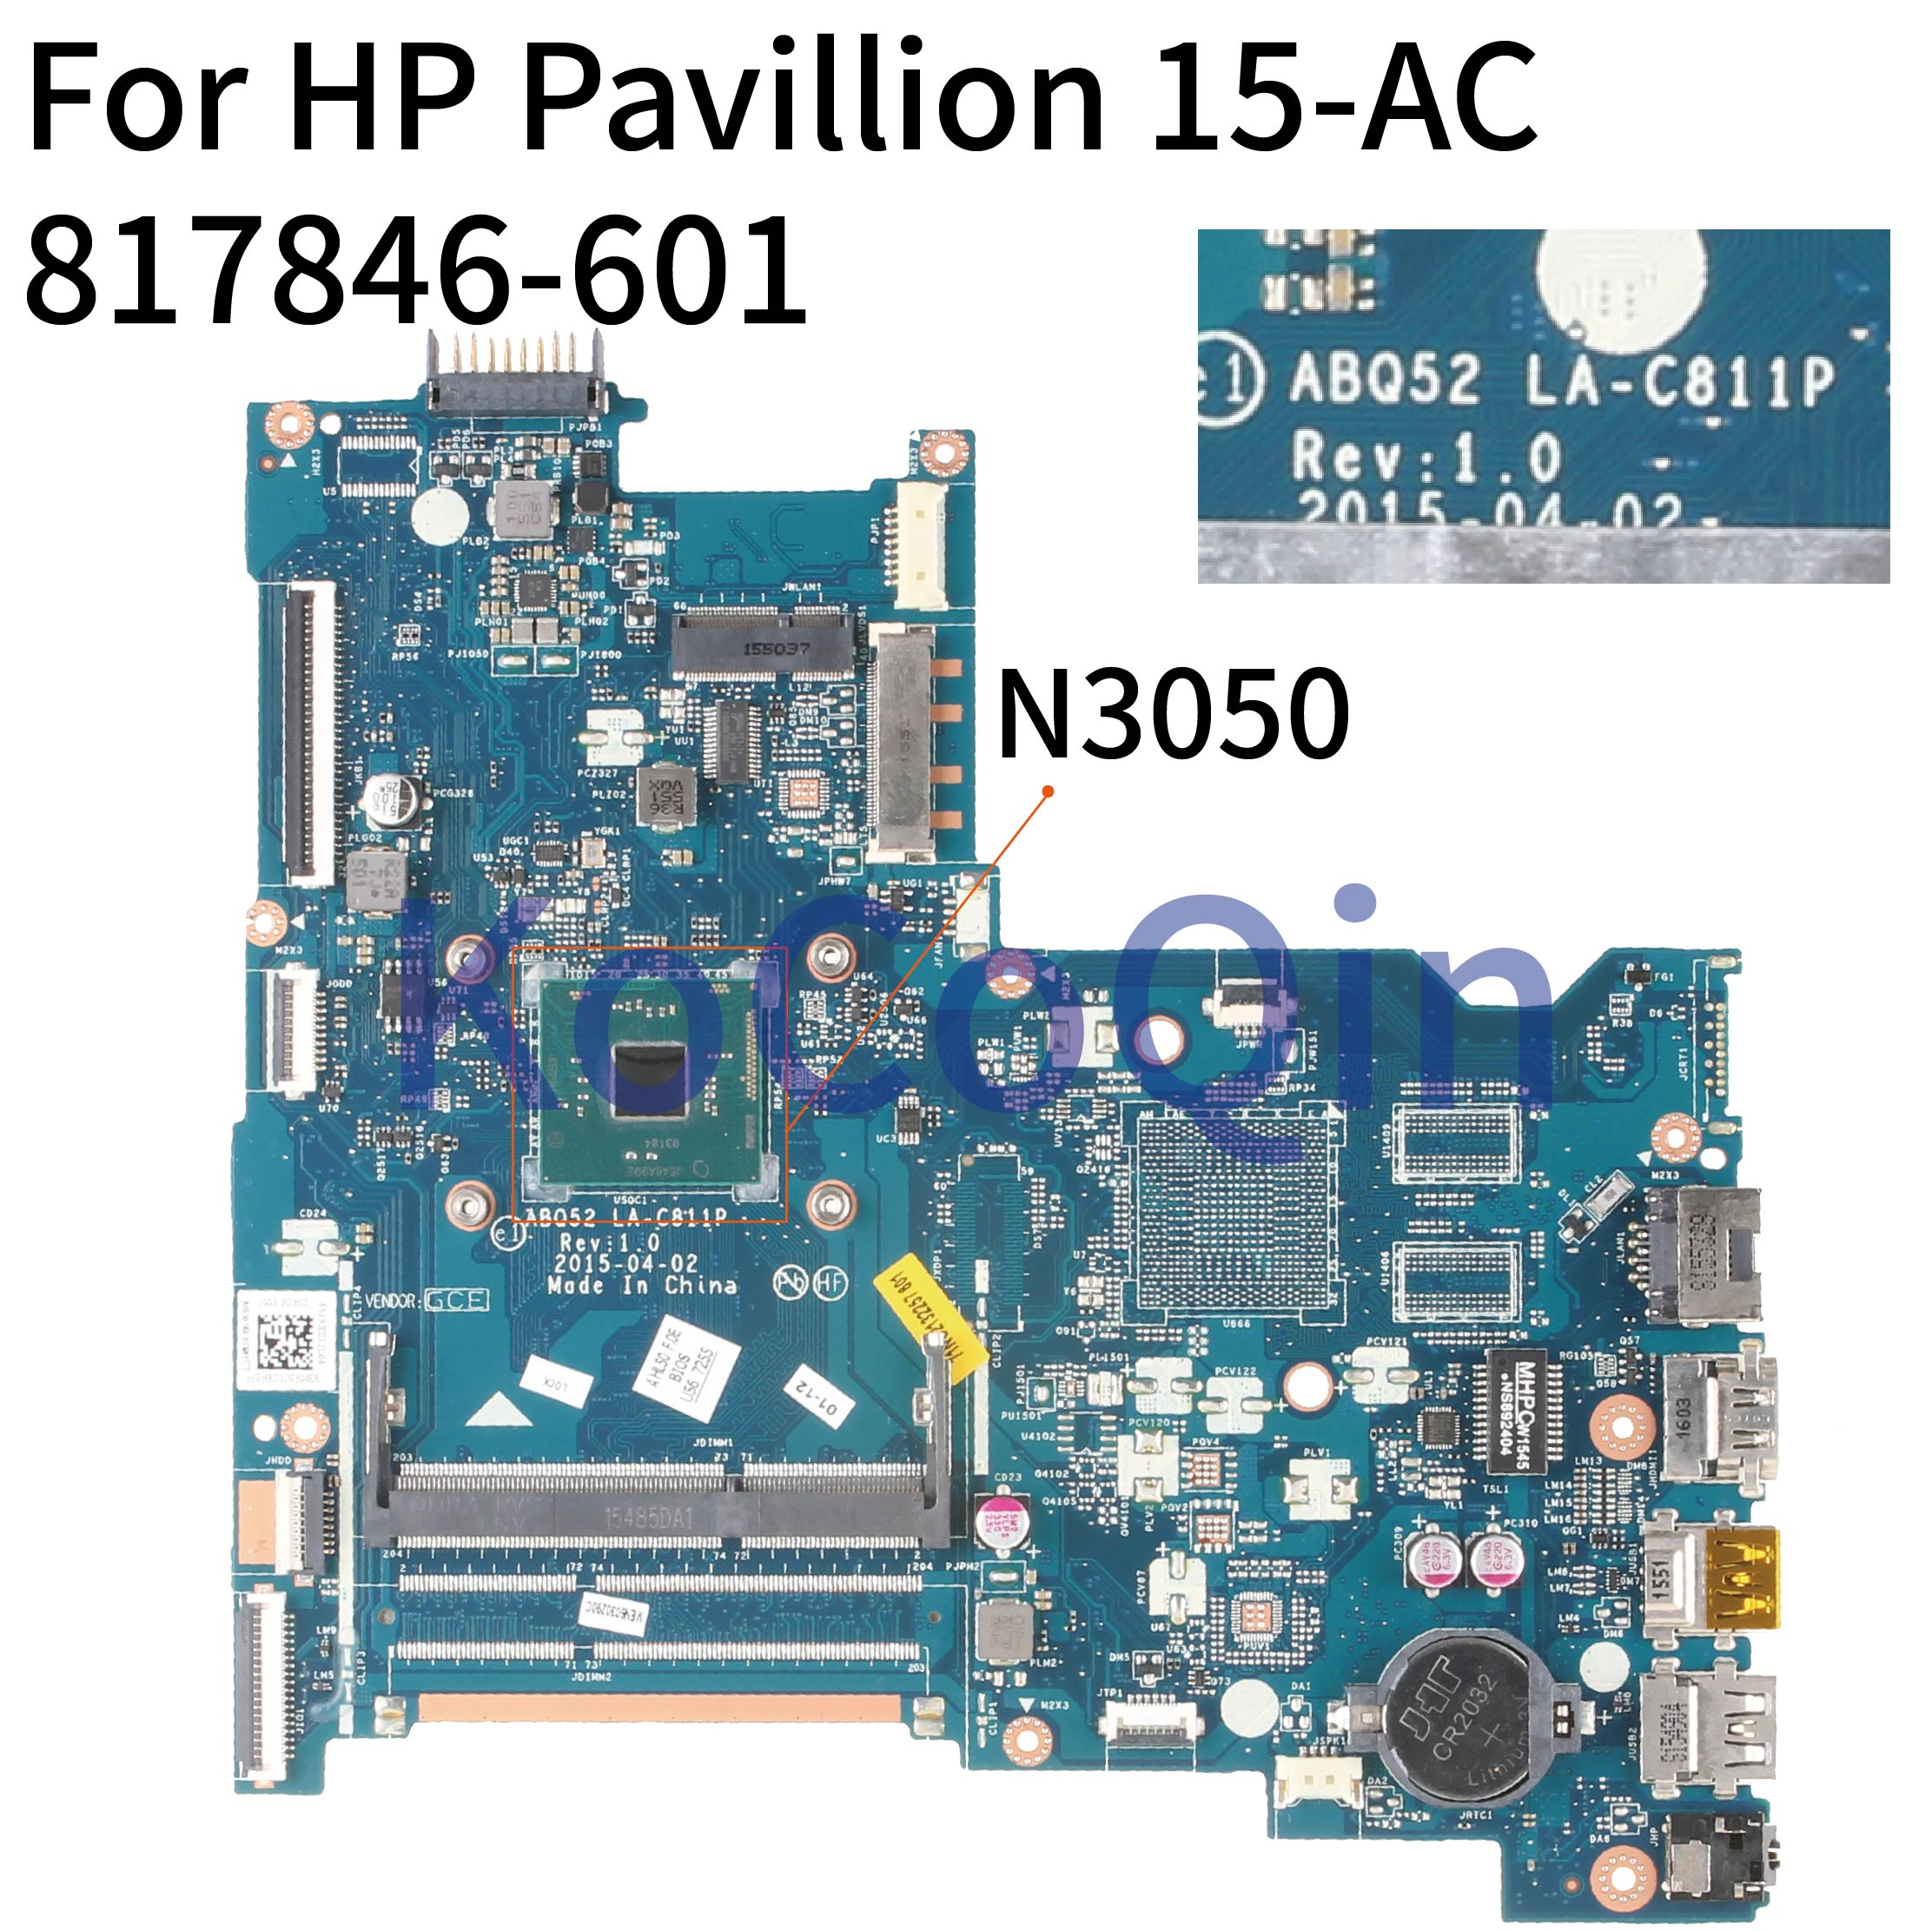 KoCoQin Laptop Motherboard For HP Pavillion 15-AC 250 256 G4 Core N3050 SR29H Mainboard 817846-001 817846-501 ABQ52 LA-C811P